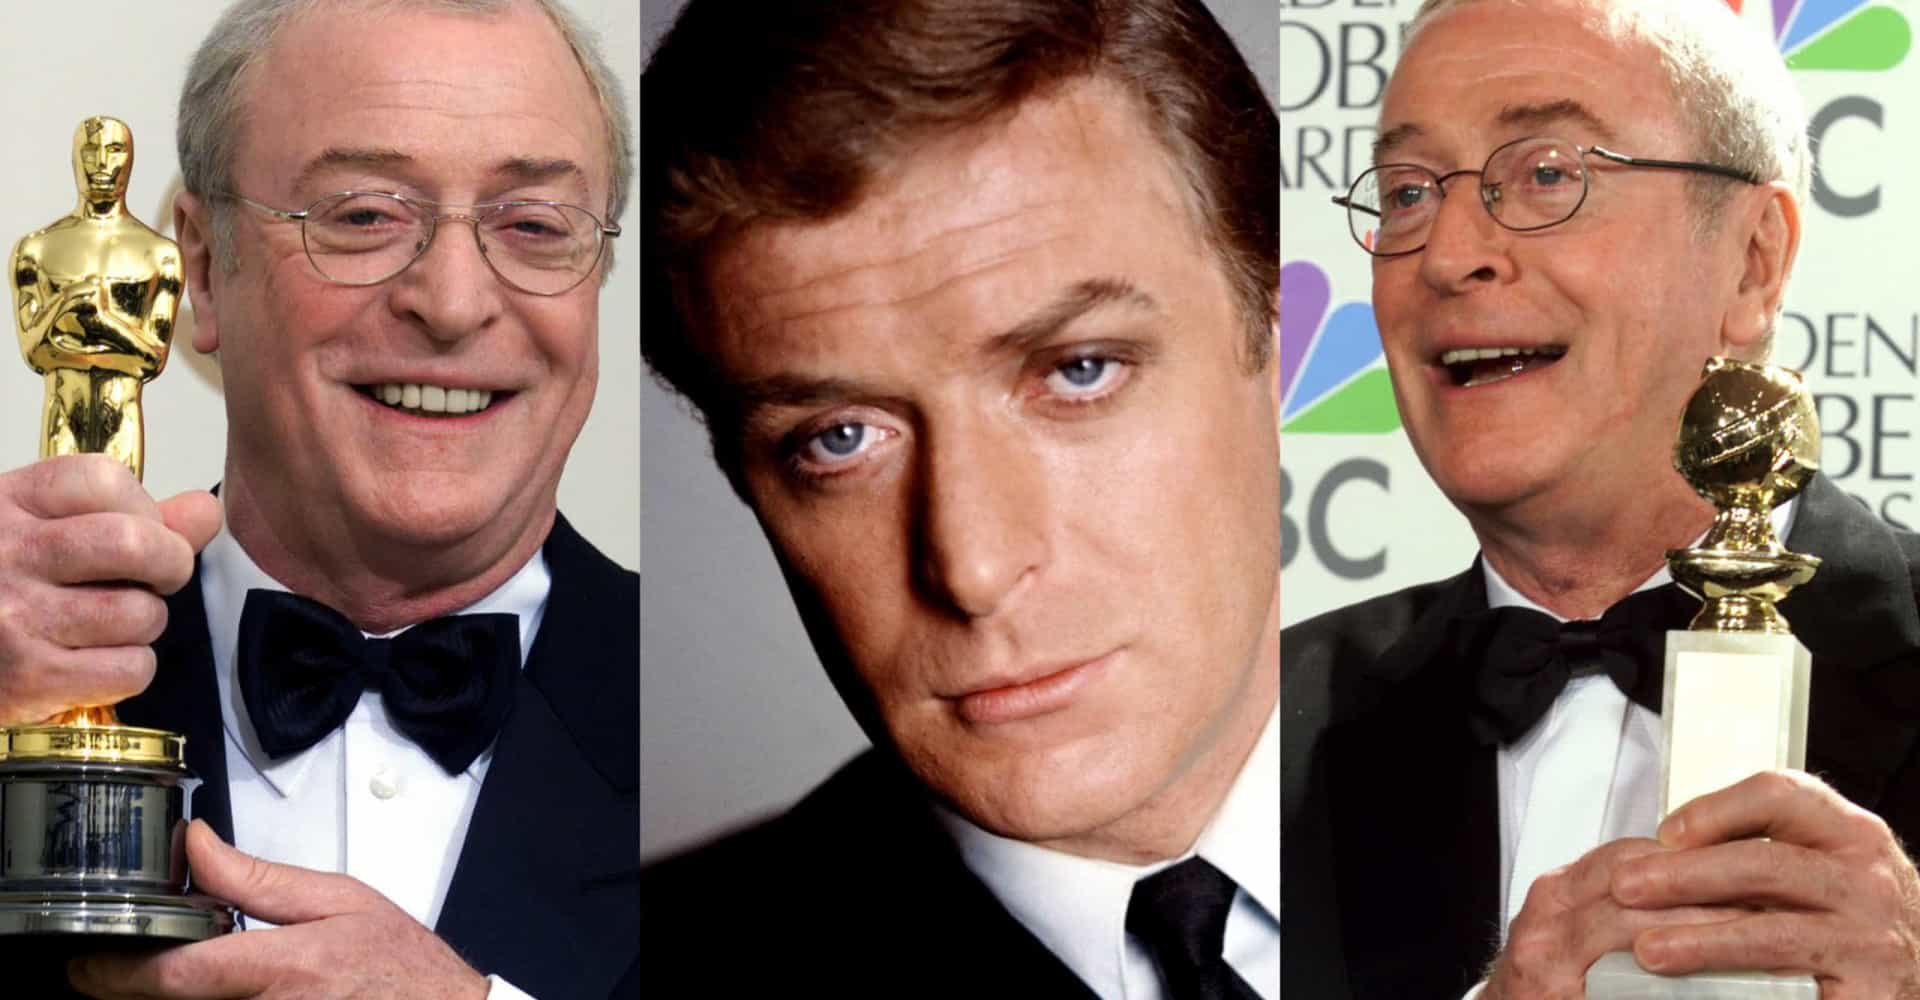 Michael Caine's greatest films and highest accolades